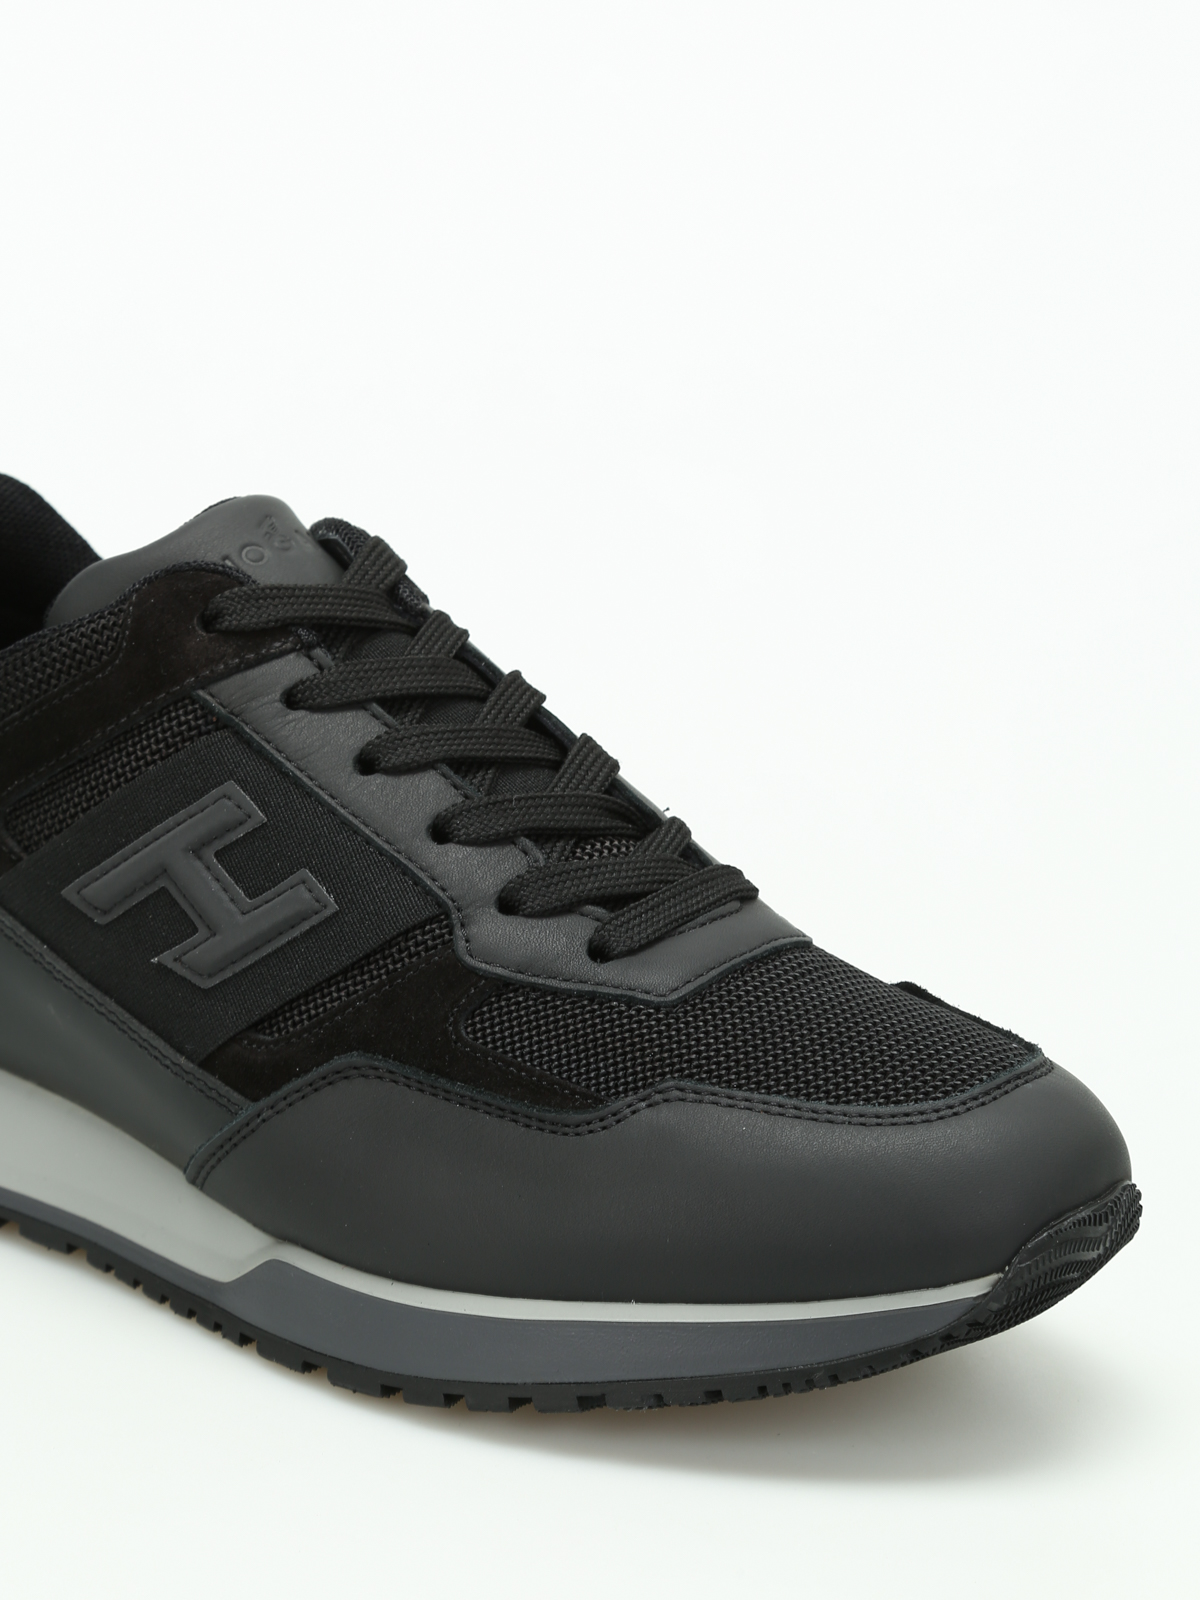 Trainers Hogan - H321 leather and mesh sneakers - HXM3210Y940HIR246L